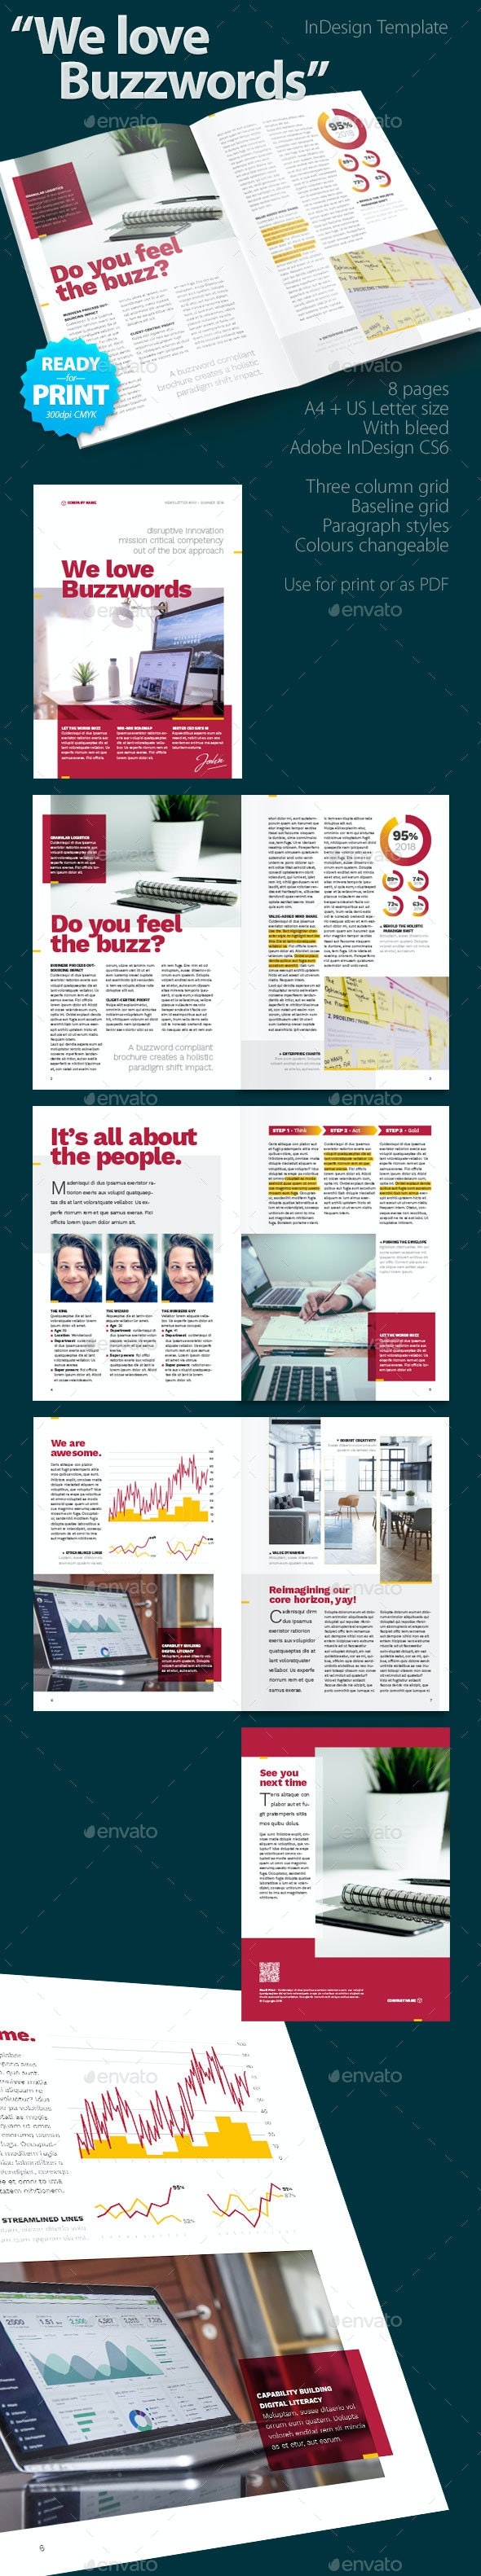 We Love Buzzwords Brochure - Corporate Brochures